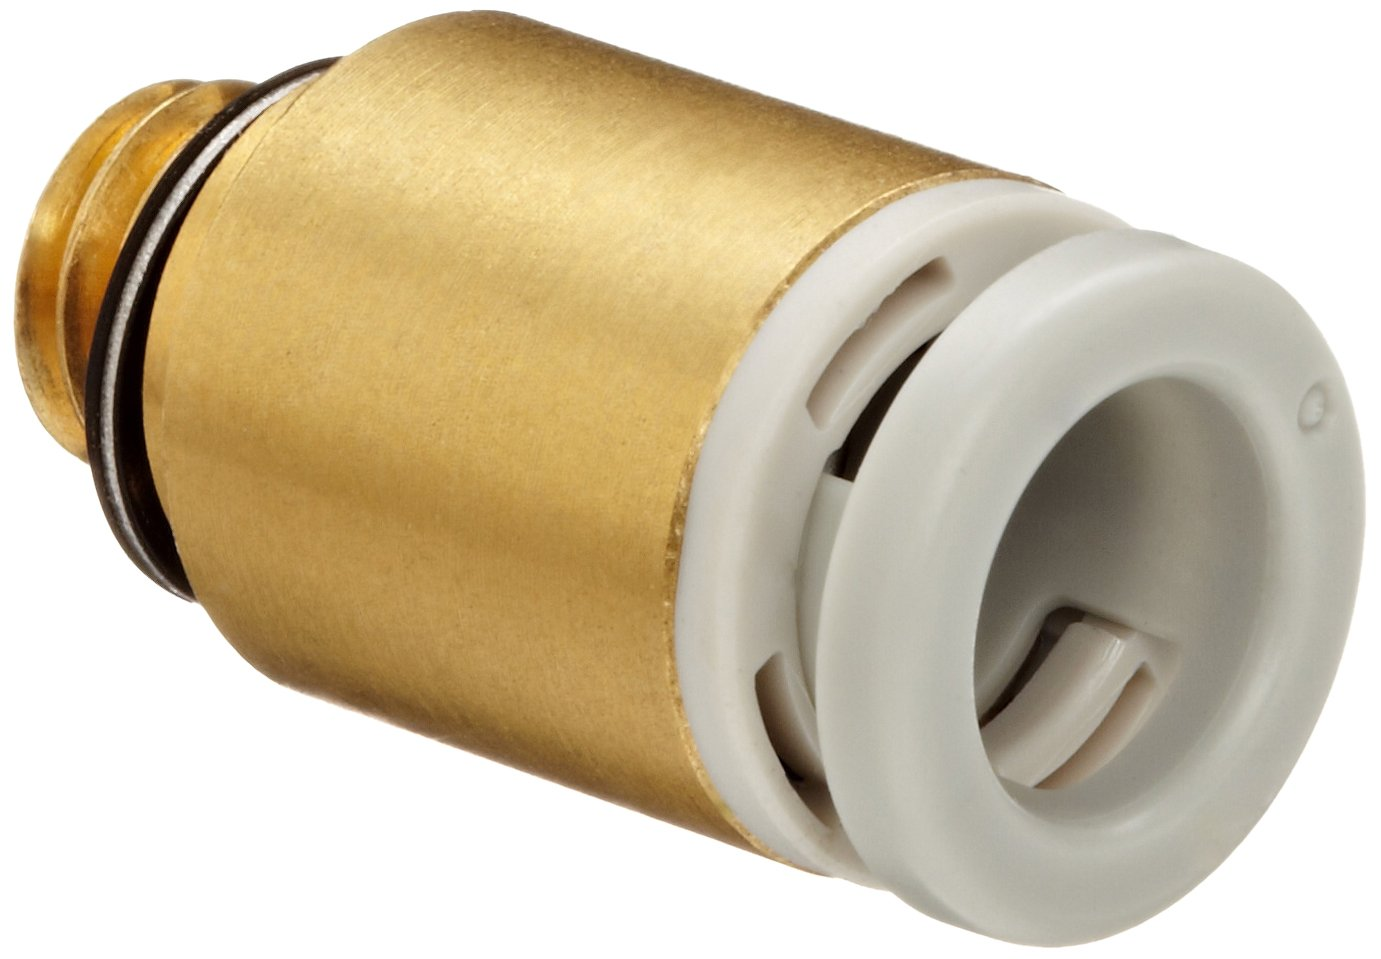 Hex Socket Head Adapter 6 mm Tube OD x M6x1 Male SMC Corporation of America SMC KQ2S06-M6A Brass Push-to-Connect Tube Fitting